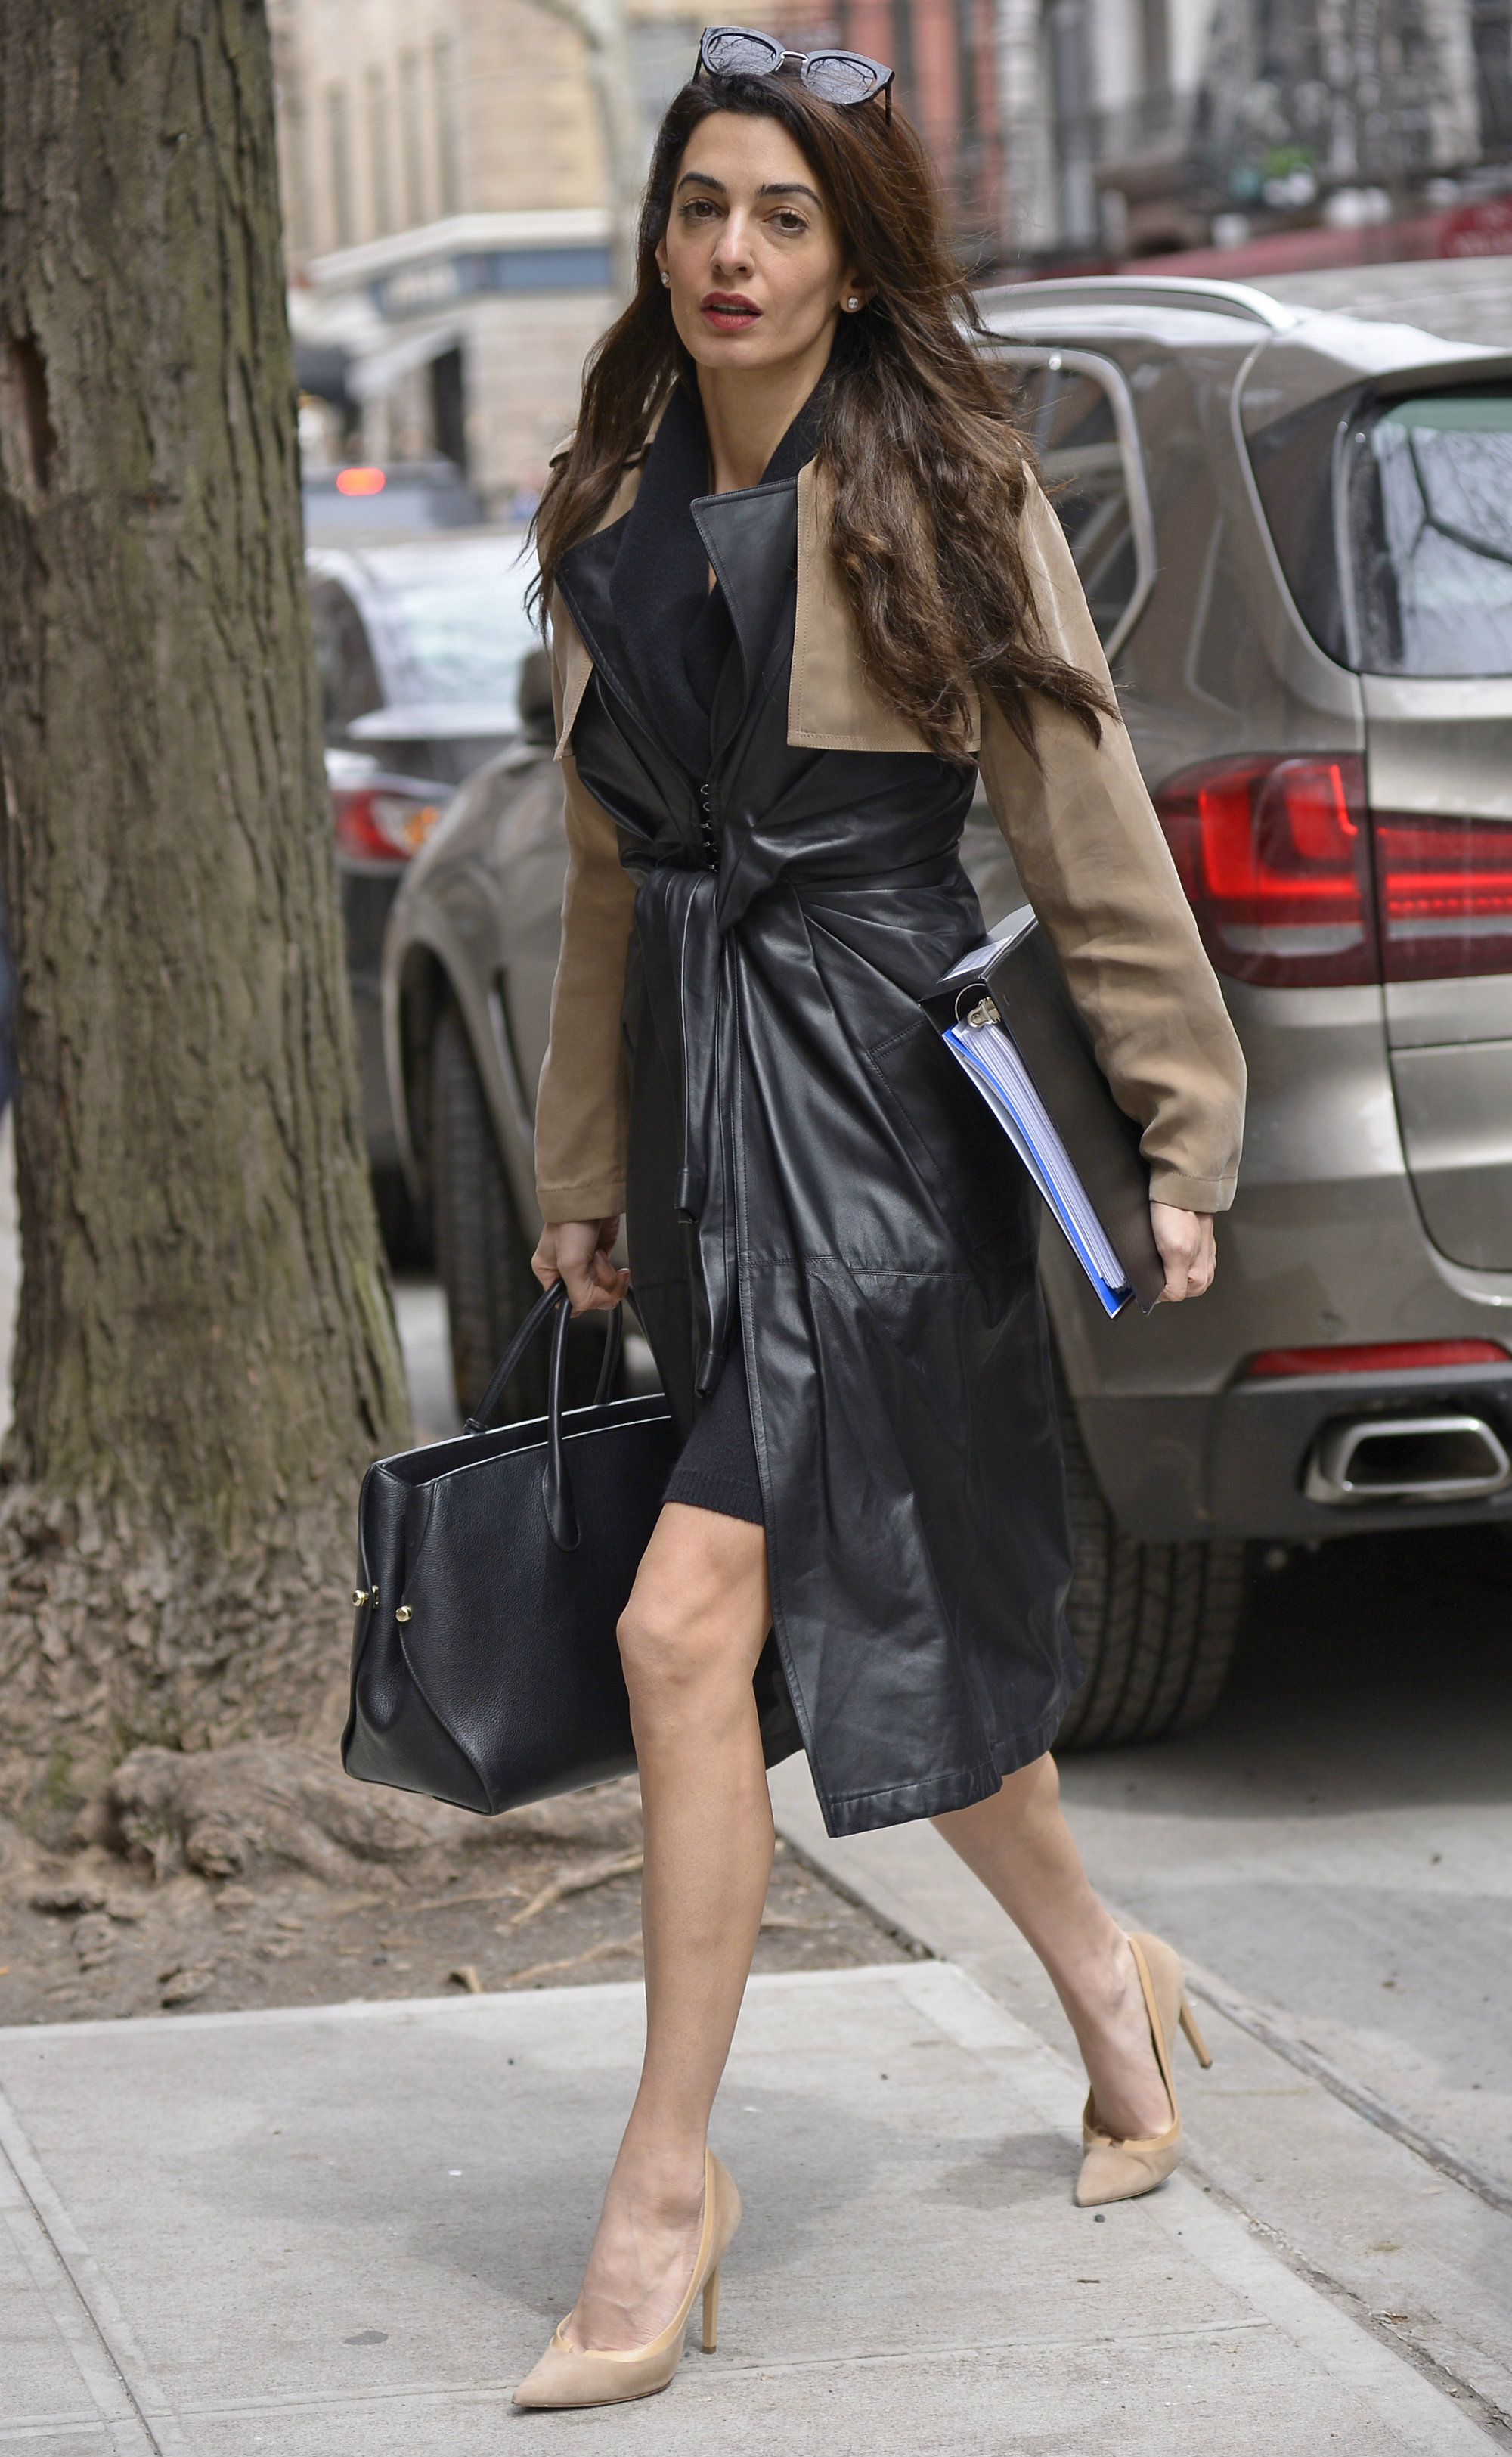 Amal Clooney's Leather Trench Coat Is the Chic Spring Staple We All Need